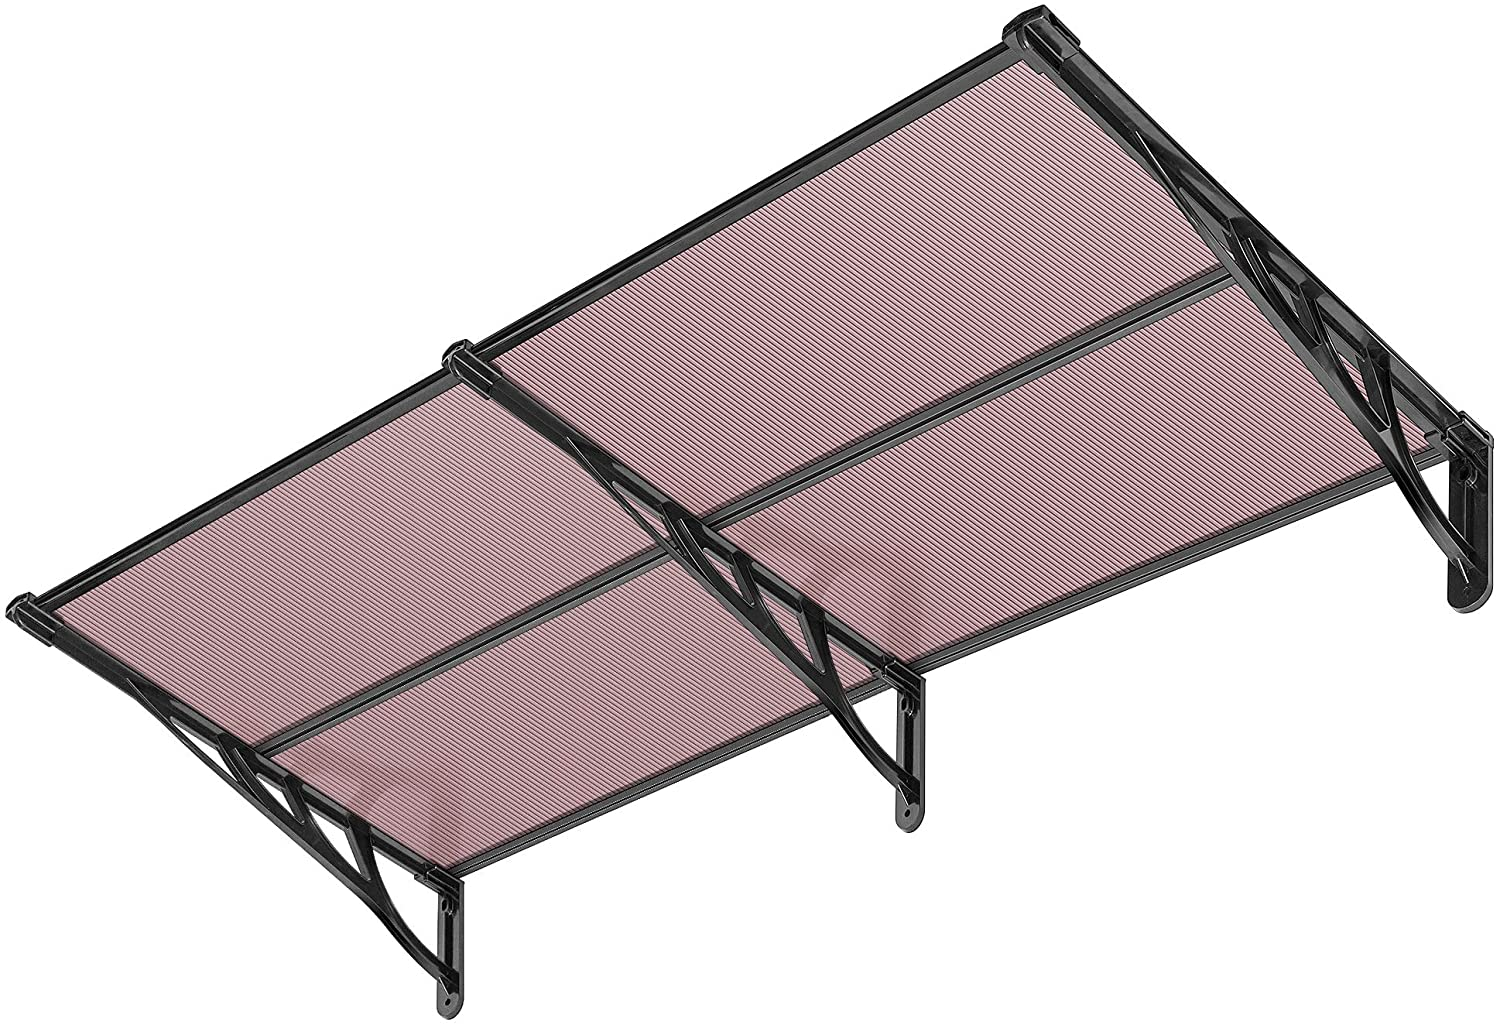 VIVOHOME Polycarbonate Spliced Window Door Awning Canopy Brown with Black Bracket 36 Inch x 80 Inch